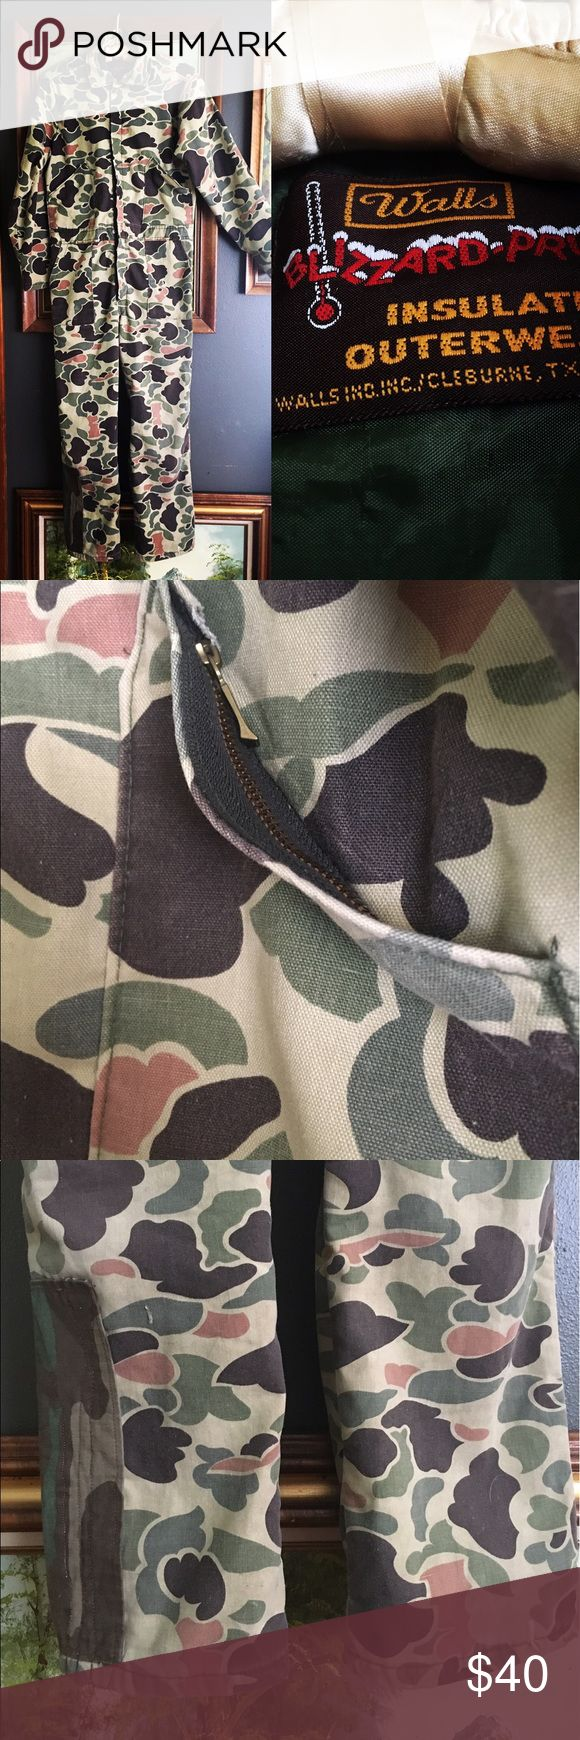 Vintage Hunting Camping Coveralls Camouflage This is made for young adult male, some patches, a little fraying on inner seams, super cute fit a size S or M, his or hers. Walls Jackets & Coats Utility Jackets